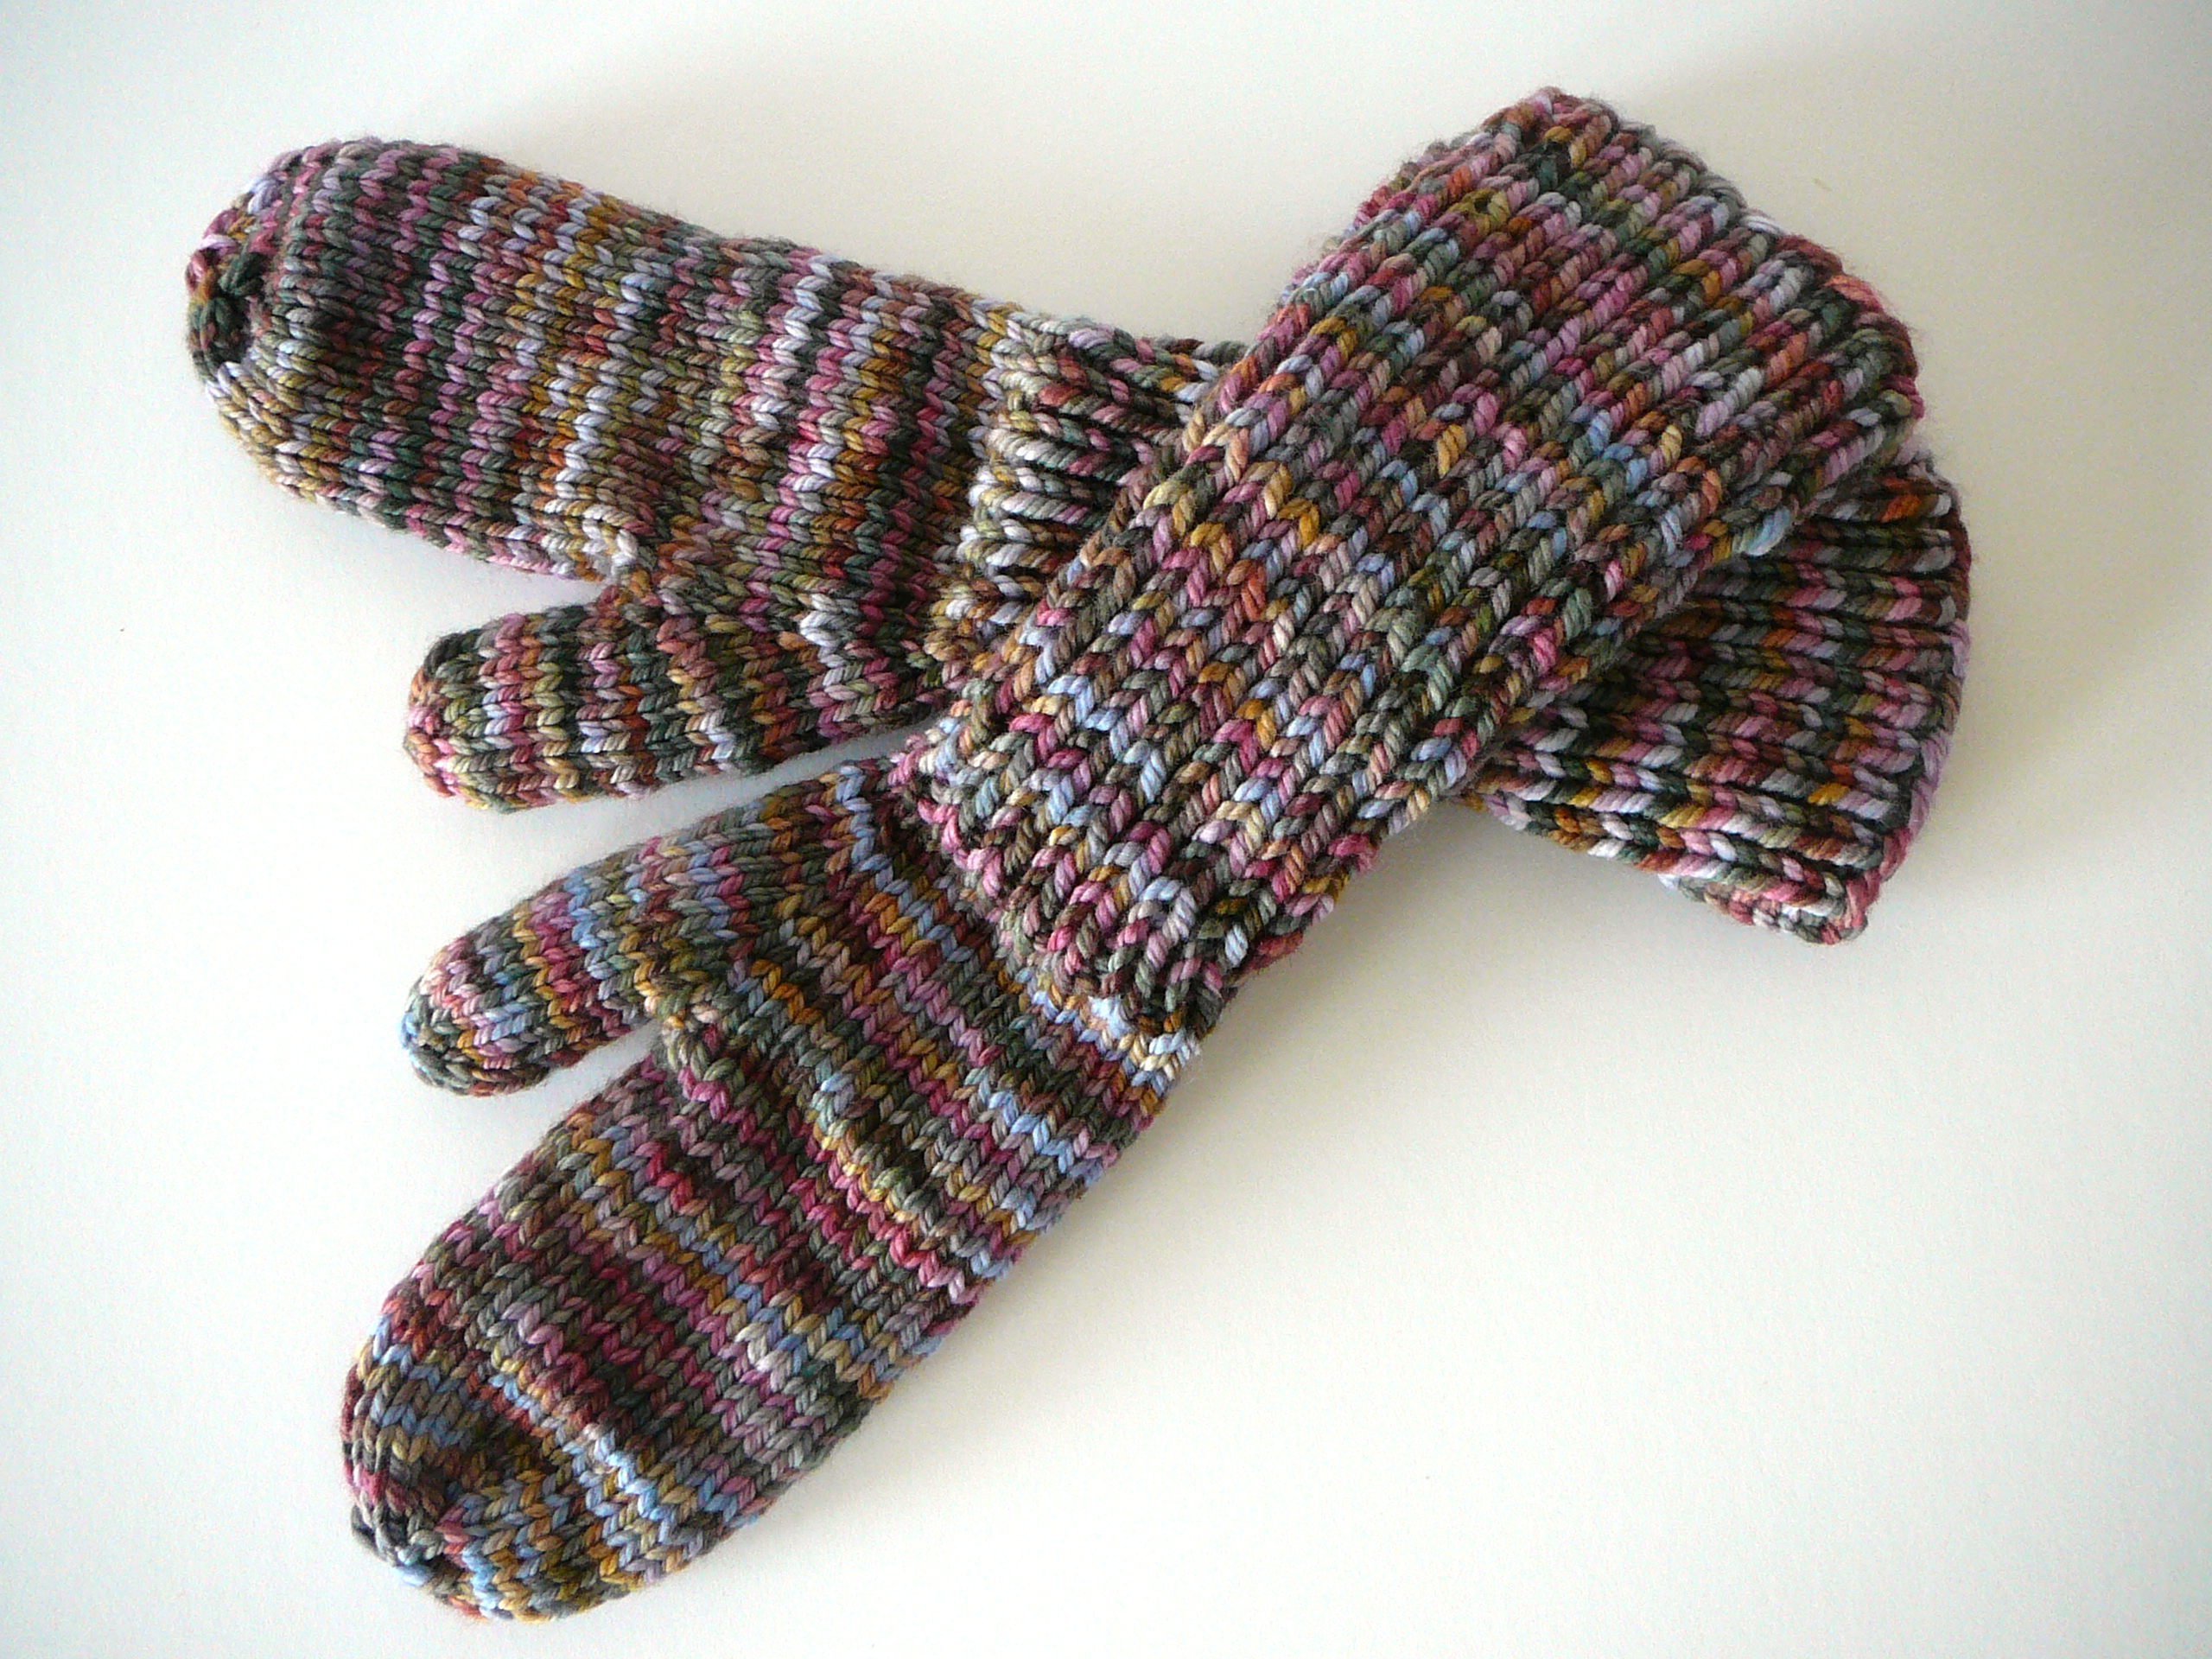 Knitting Cables Without Cable Needle : Horseshoe cable knit mittens and knitting cables without a